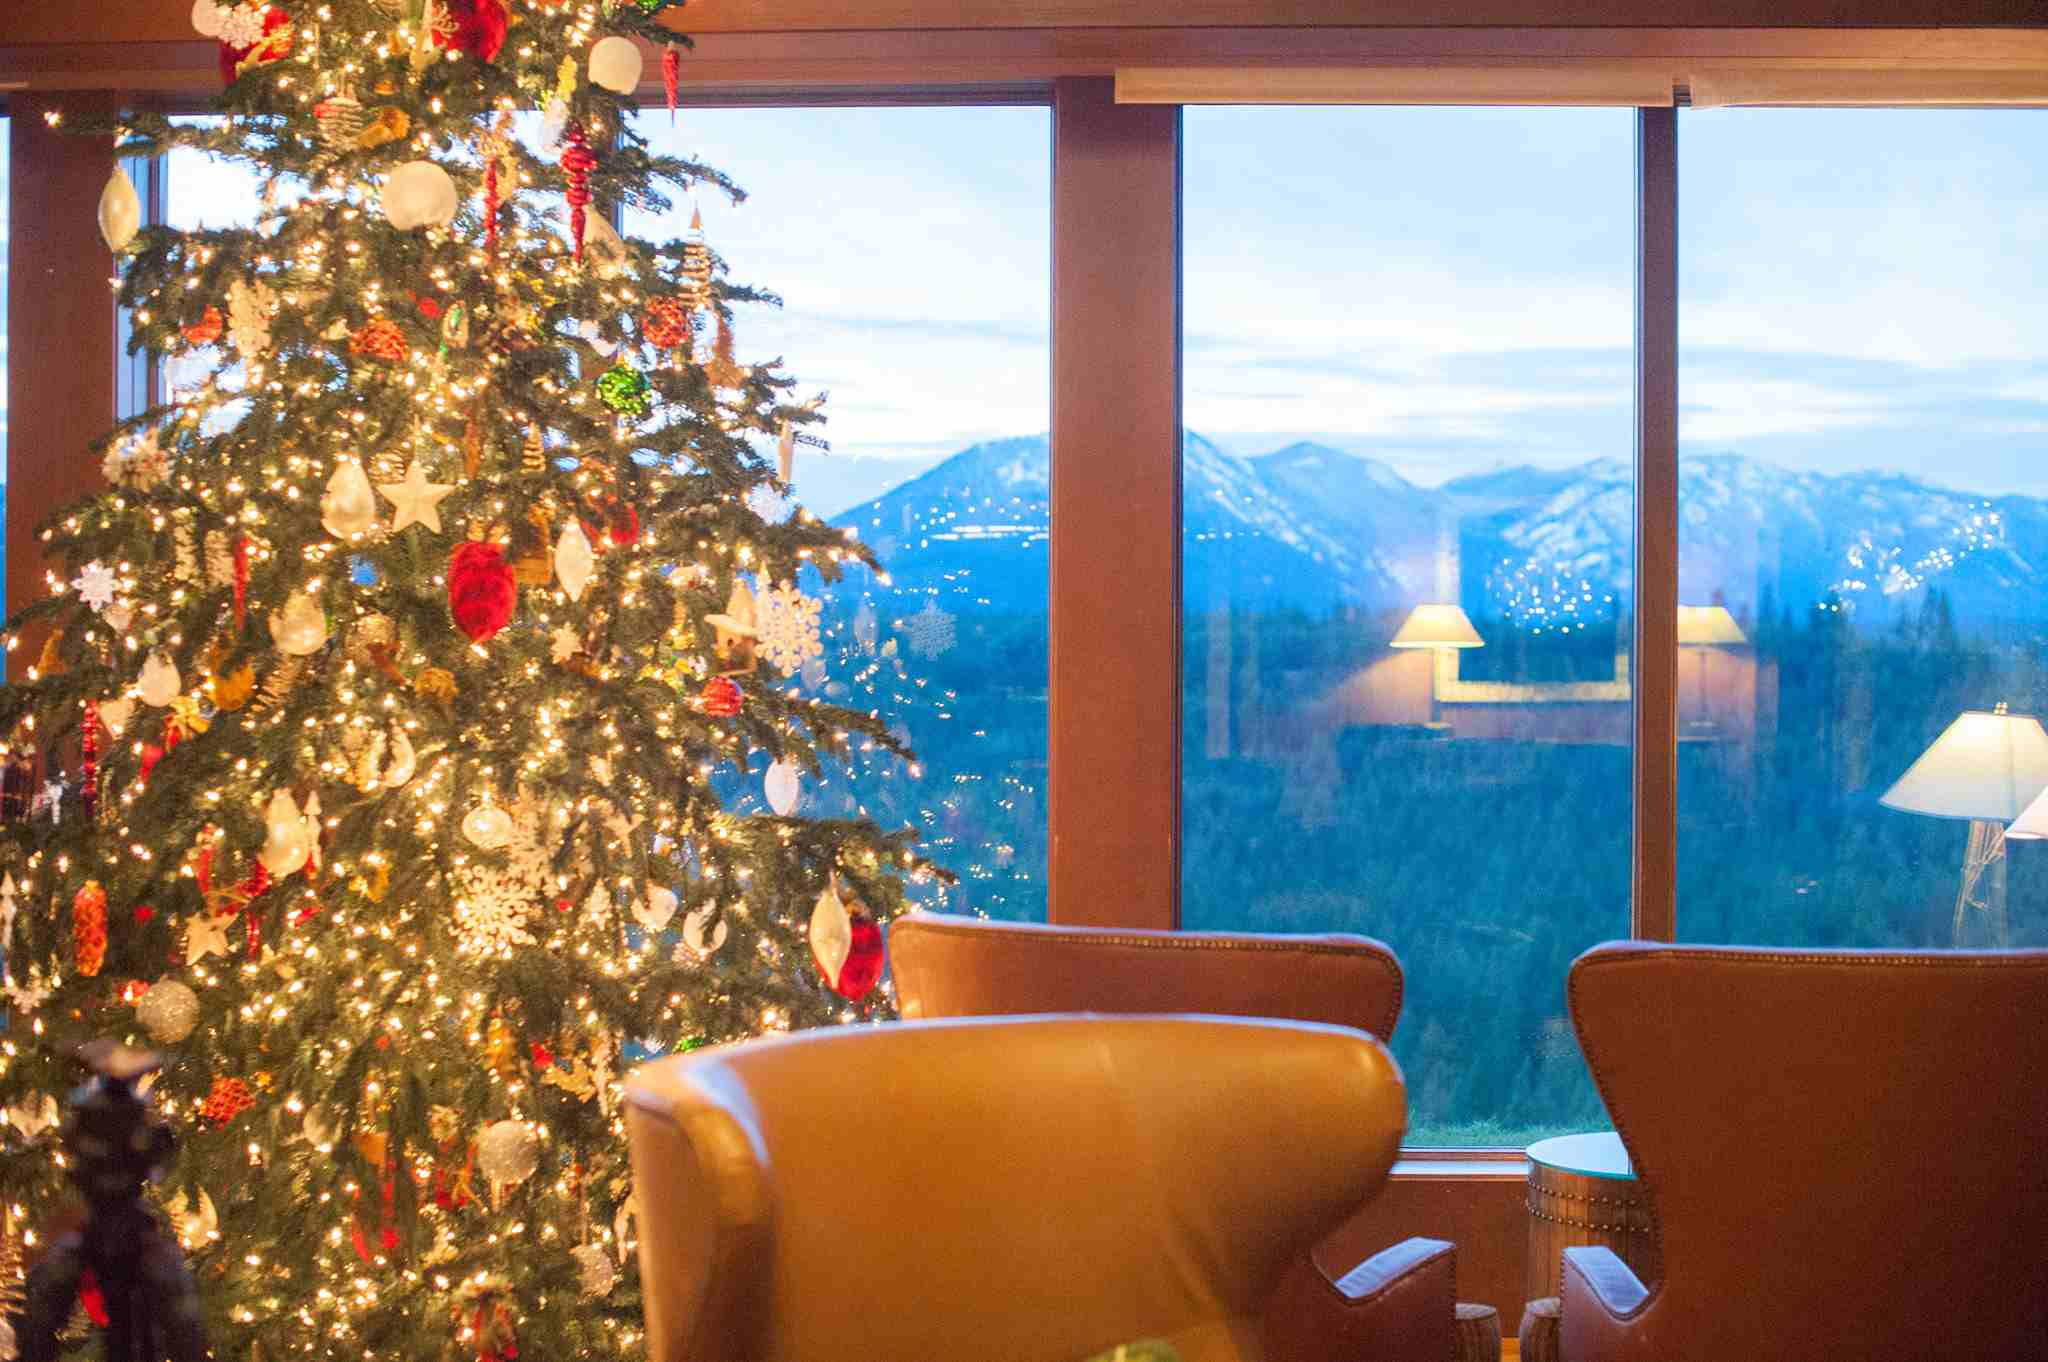 Best Family Christmas Vacations.Best Christmas Getaways For Families With Kids